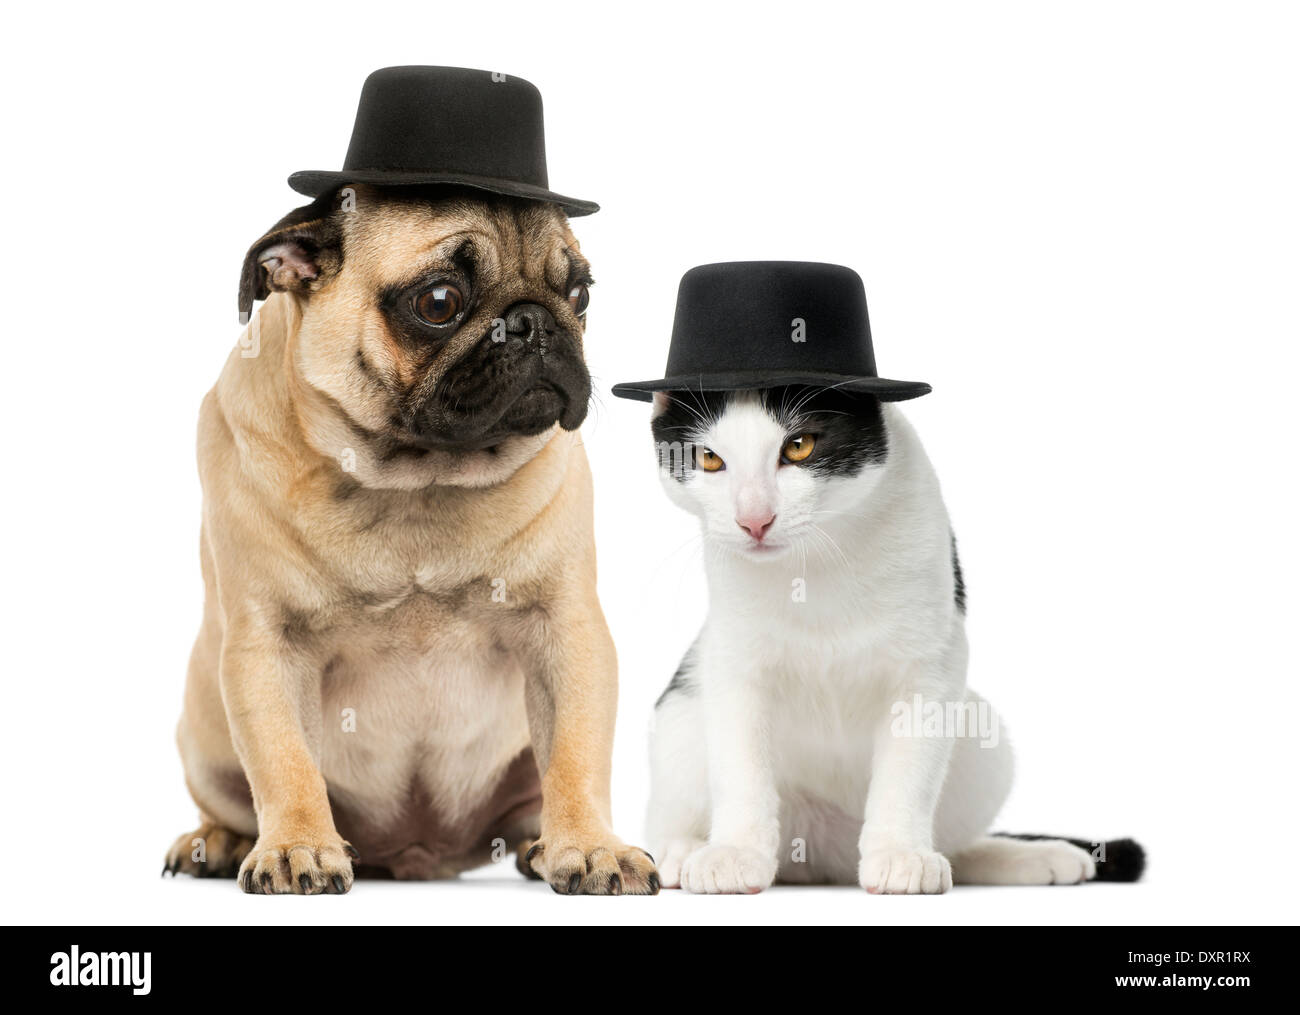 Pug puppy and cat wearing a top hat against white background - Stock Image